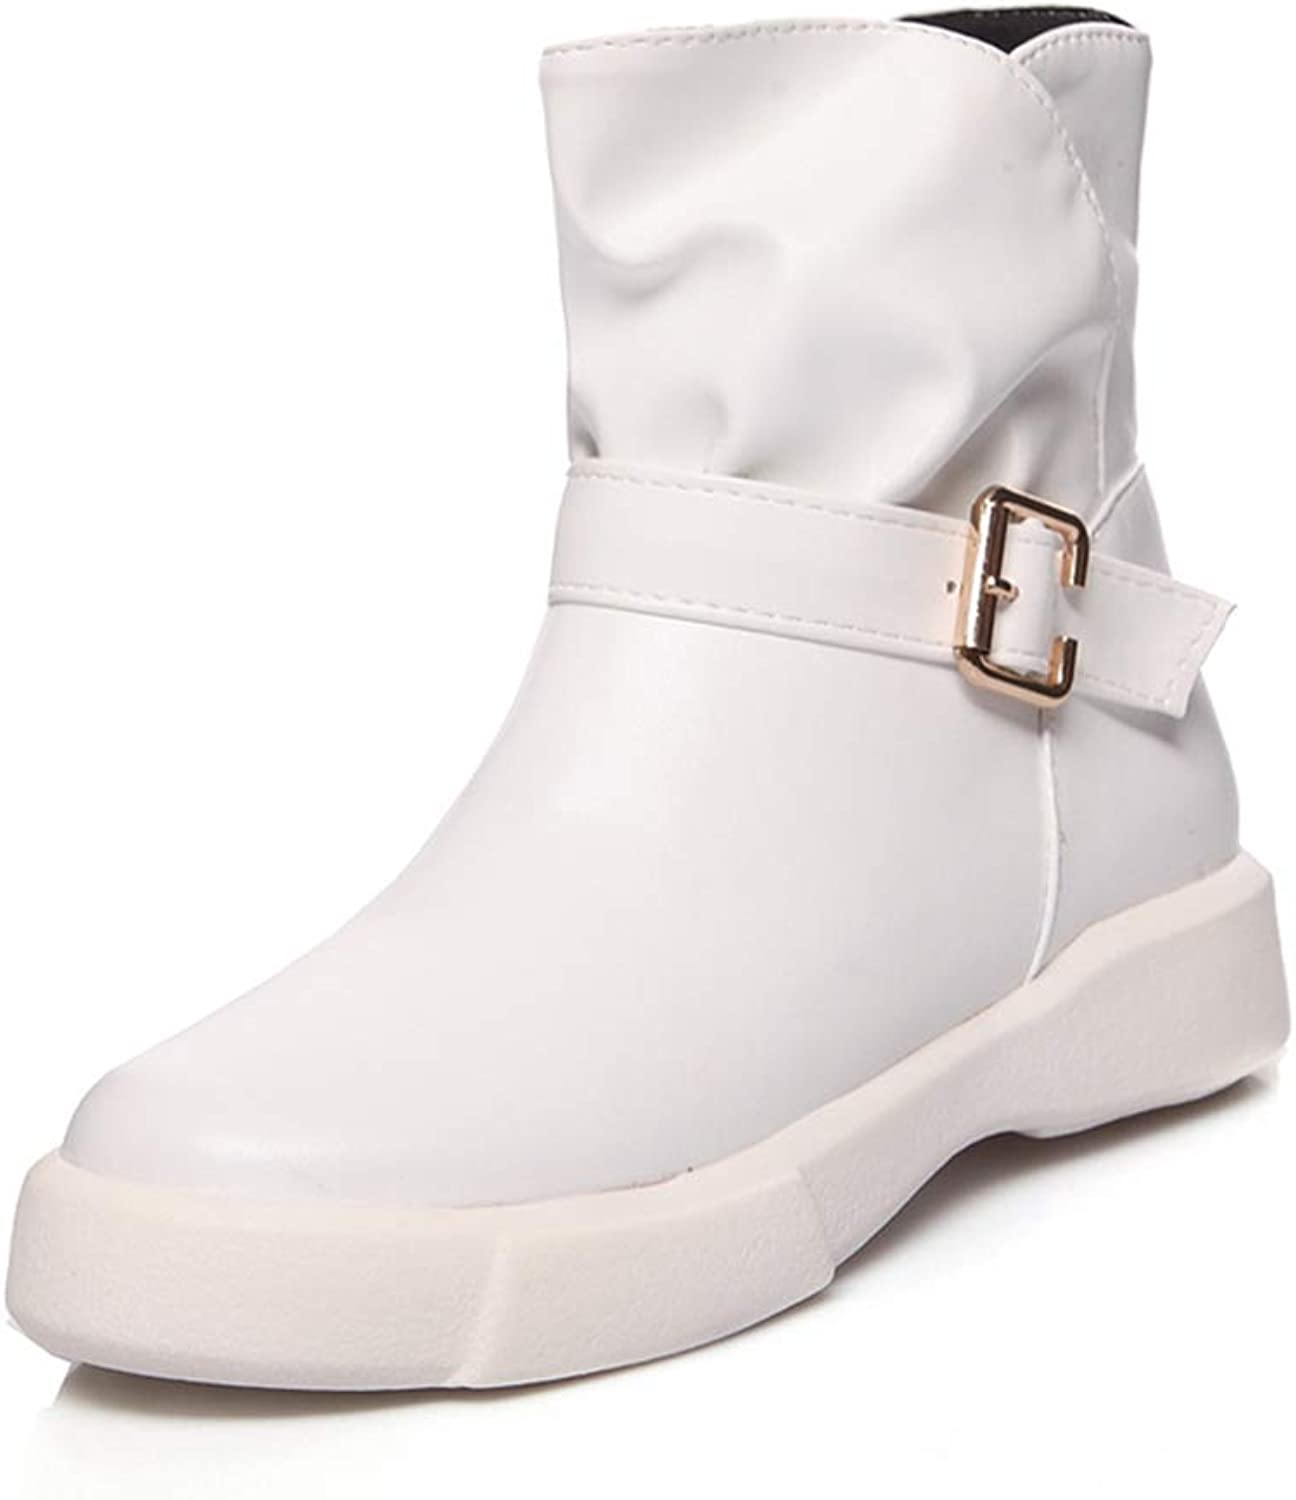 Hoxekle Fashion Buckle Ankle Boots for Women Winter Flat Boots Spring Autumn Casual Women Black White Boots shoes